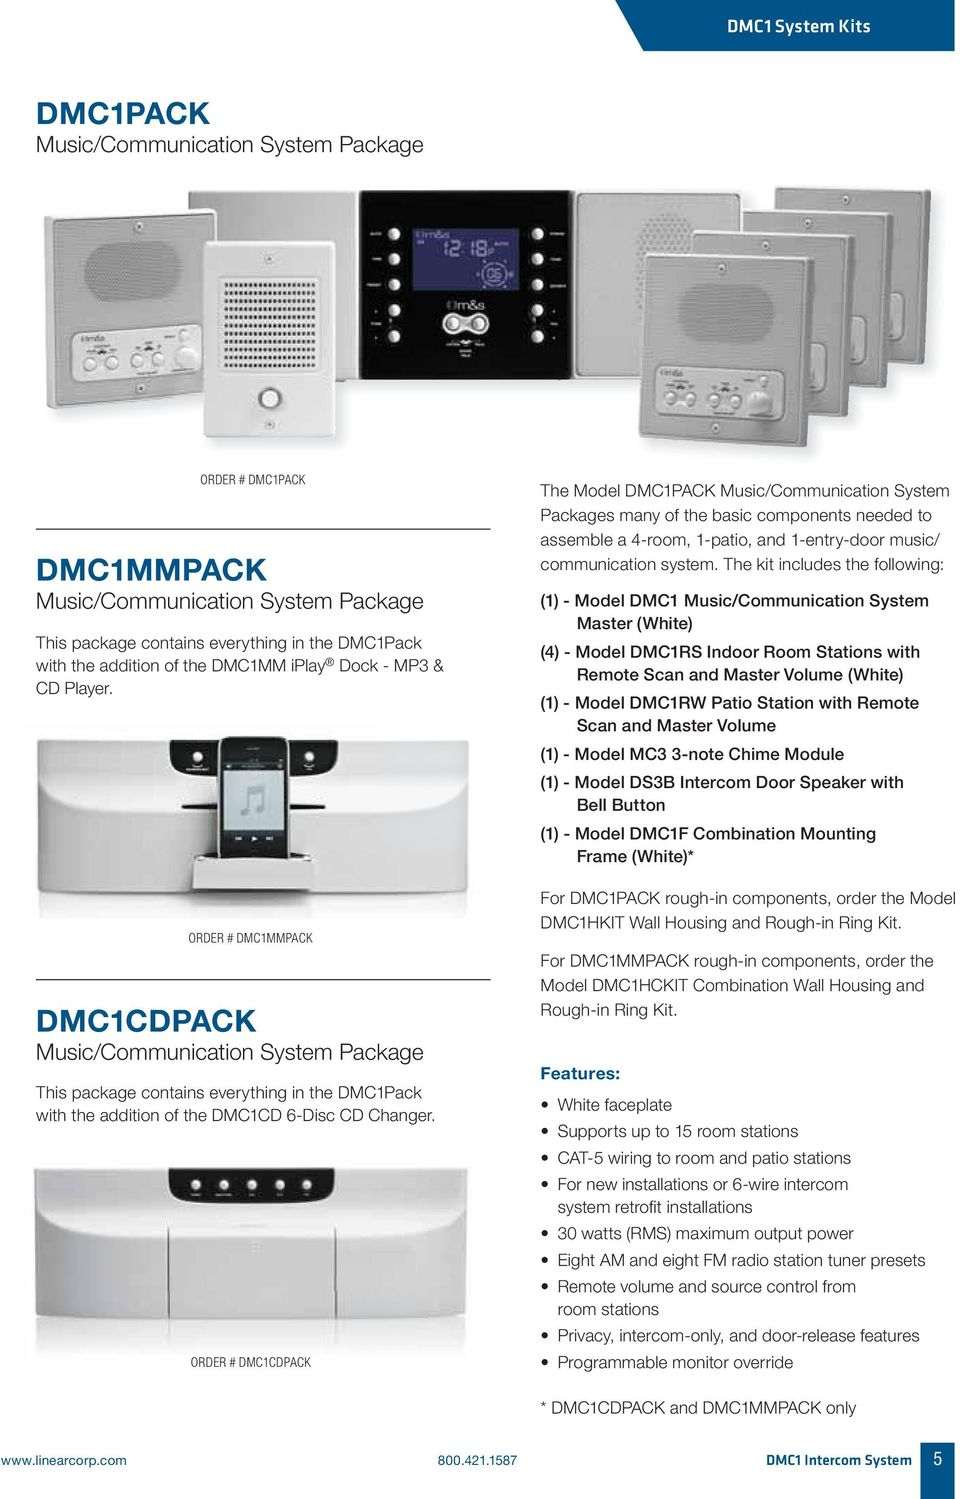 ORDER # DMC1MMPACK DMC1CDPACK Music/Communication System Package This package contains everything in the DMC1Pack with the addition of the DMC1CD 6-Disc CD Changer.